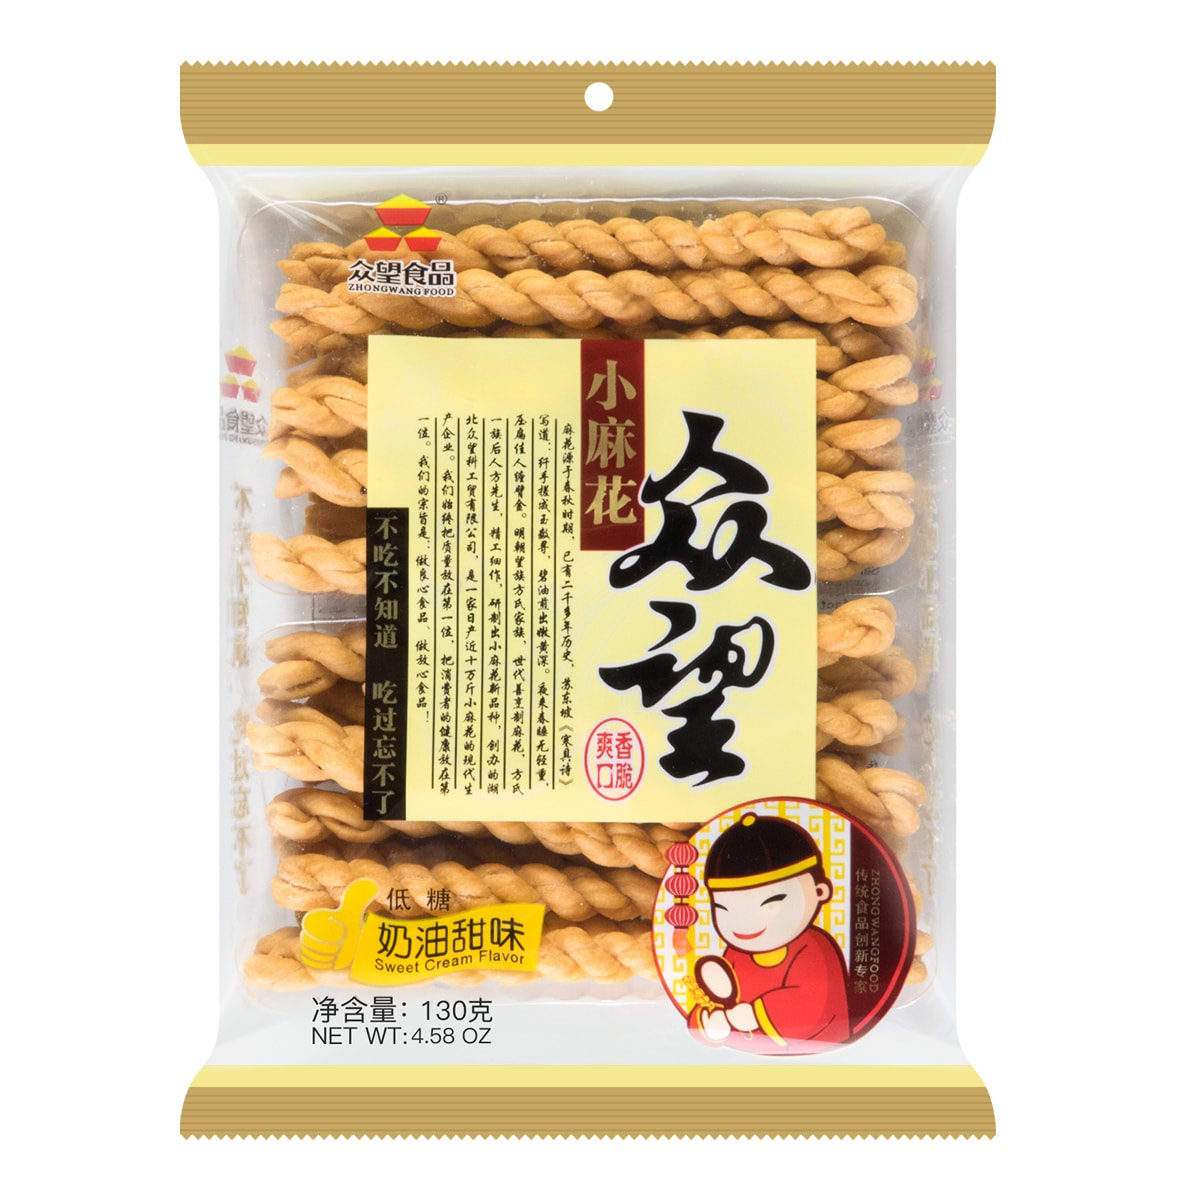 ZHONGWANG Sweet Cream Flavor Mini-fried Dough Twist 130g